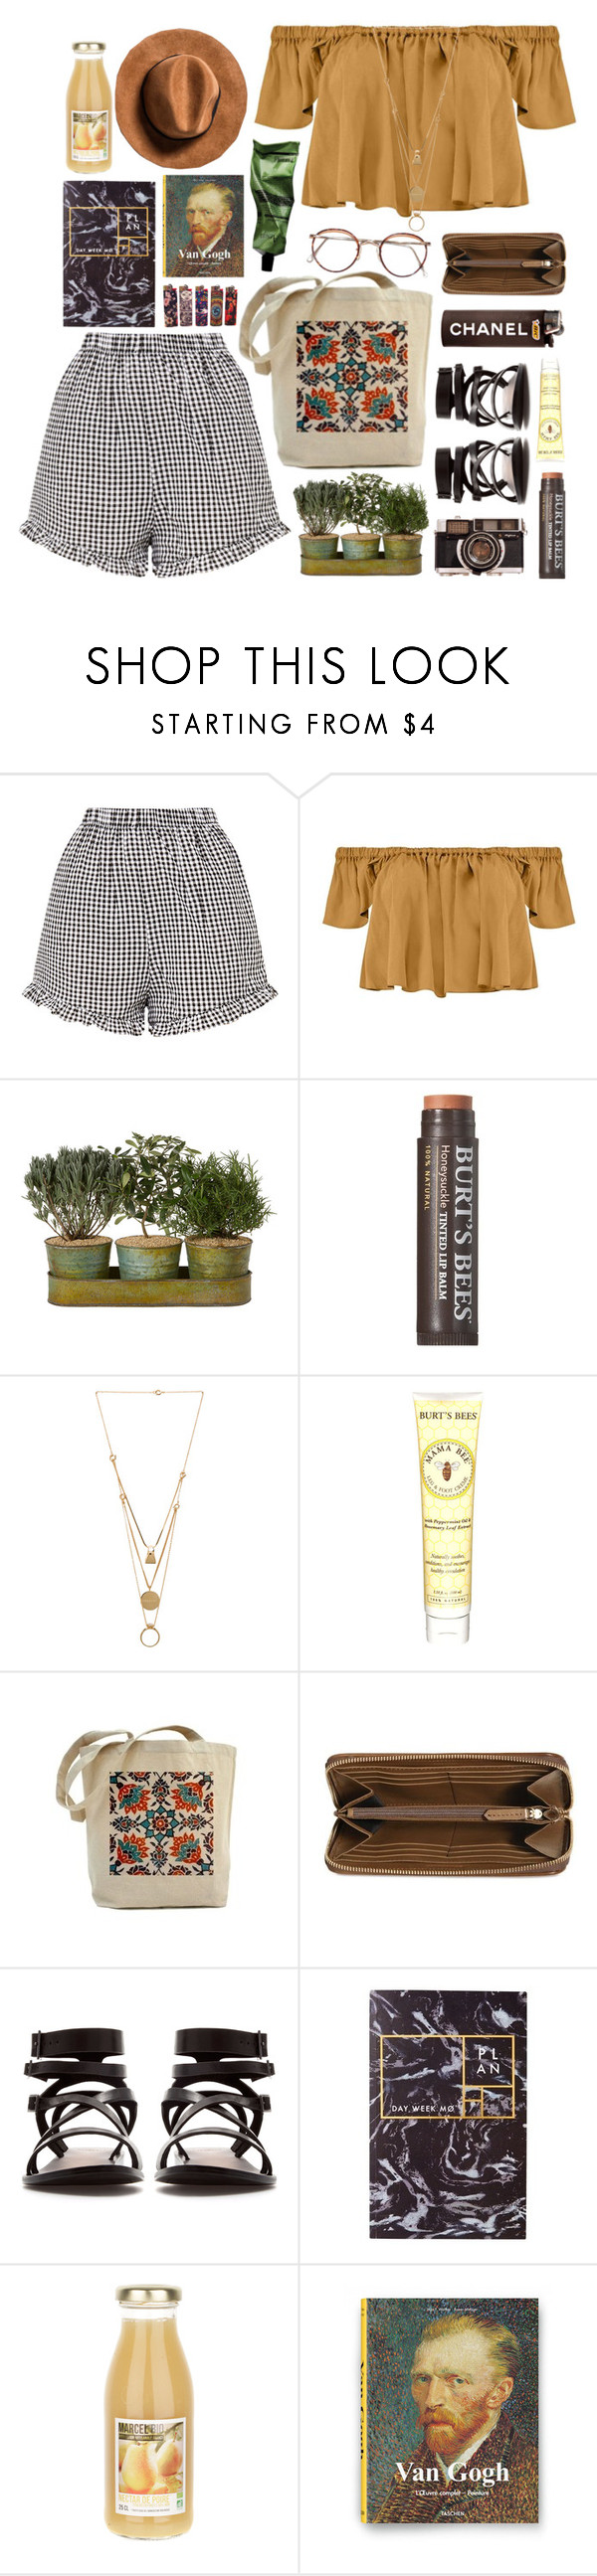 """""""set 1 ♡ there's a million words i could have said, and you might still be mine"""" by manicpiixiedreamgirl ❤ liked on Polyvore featuring Boohoo, Burt's Bees, Maison Margiela, Burberry, Zara and Aesop"""